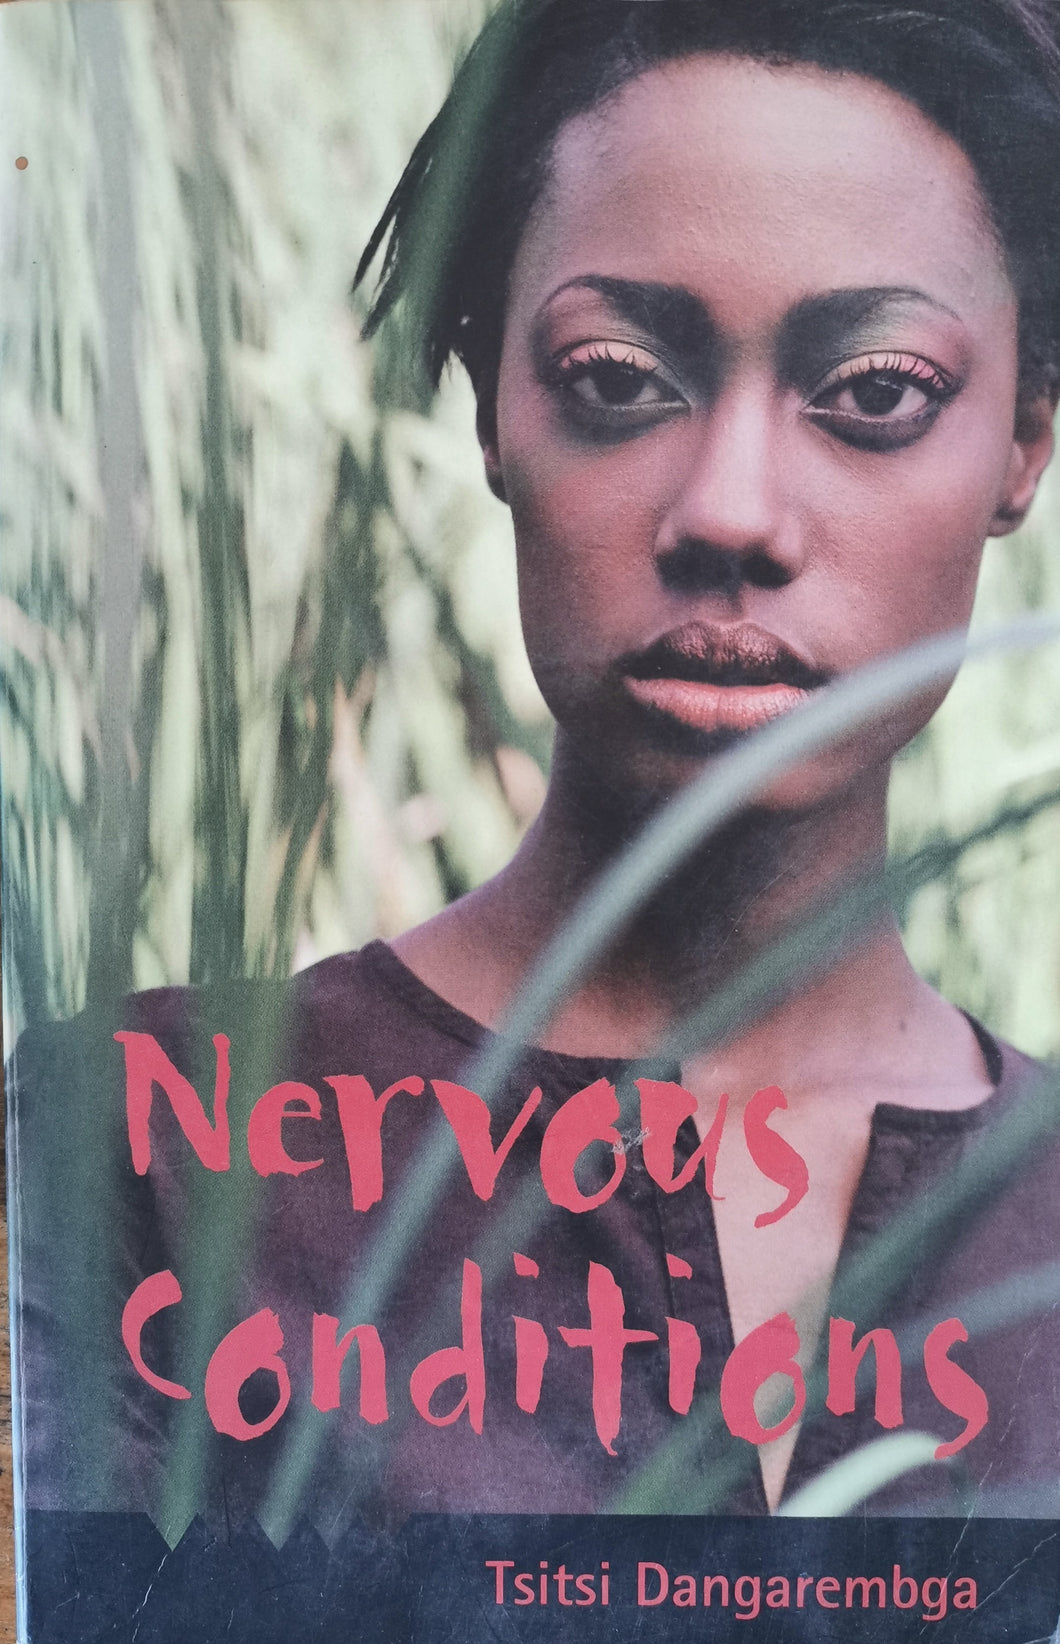 Tsitsi Dangarembga - Nervous Conditions